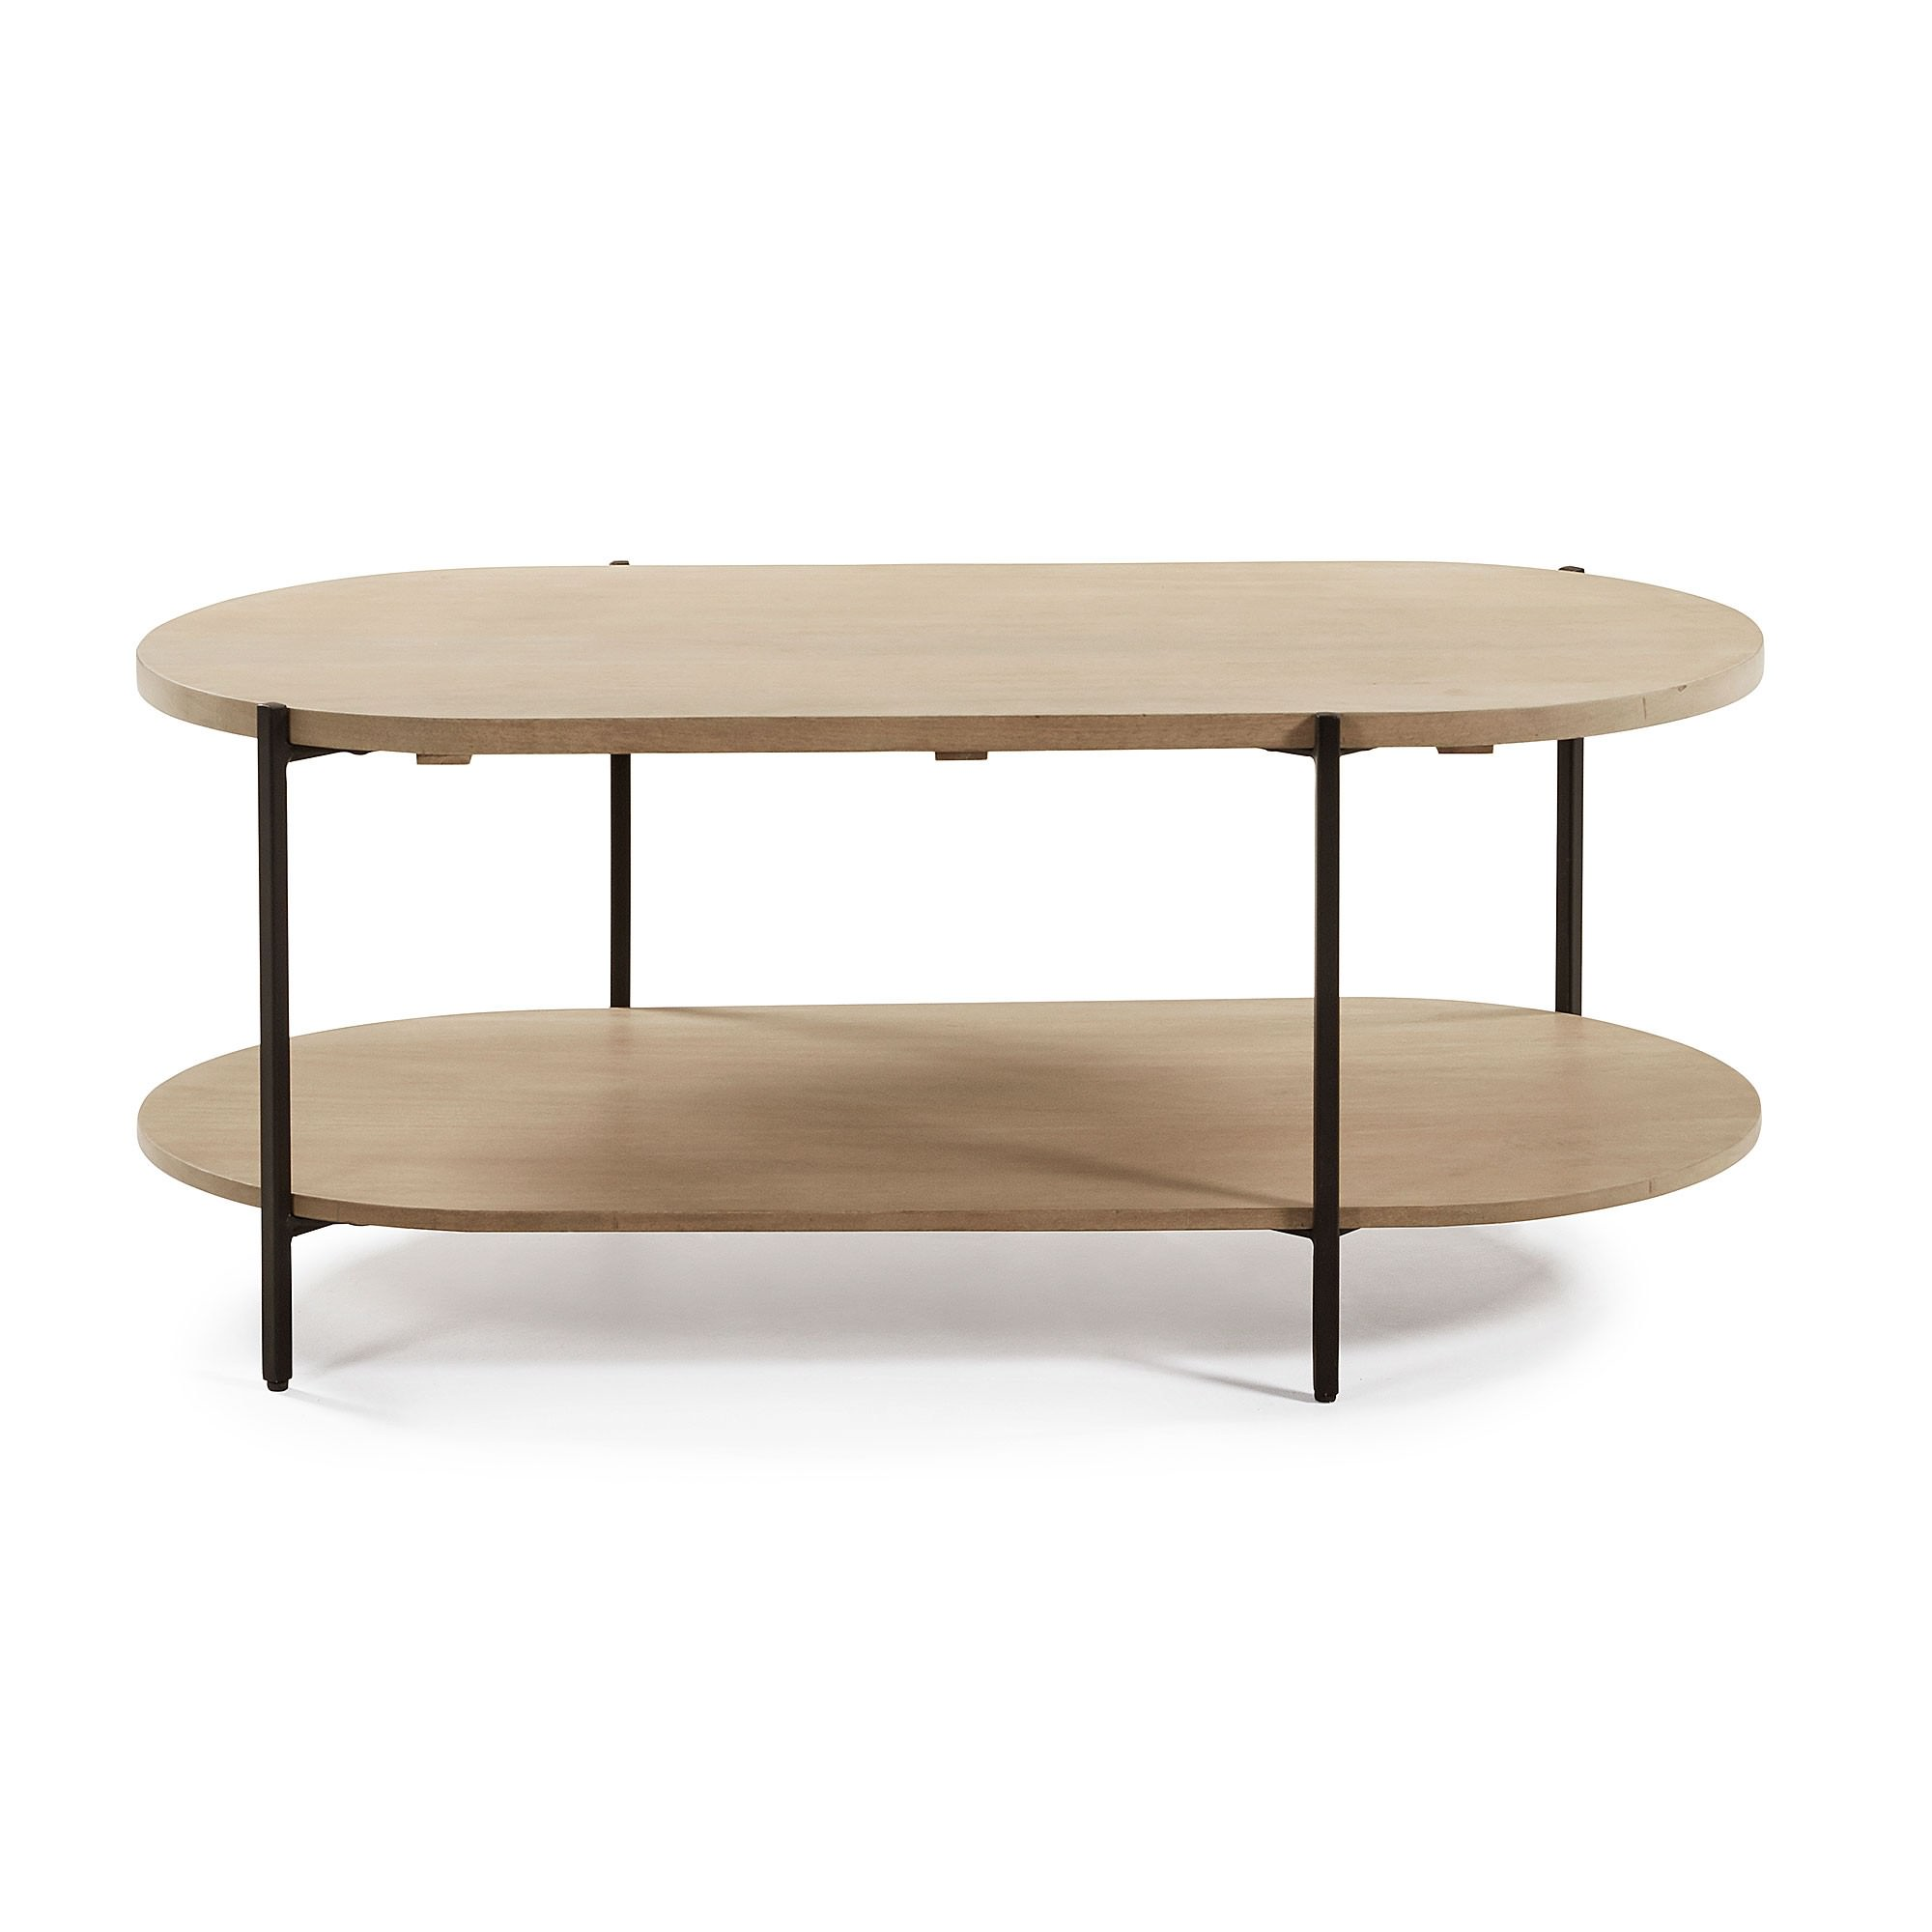 Aparador Mango Wood & Iron Oval Coffee Table, 110cm